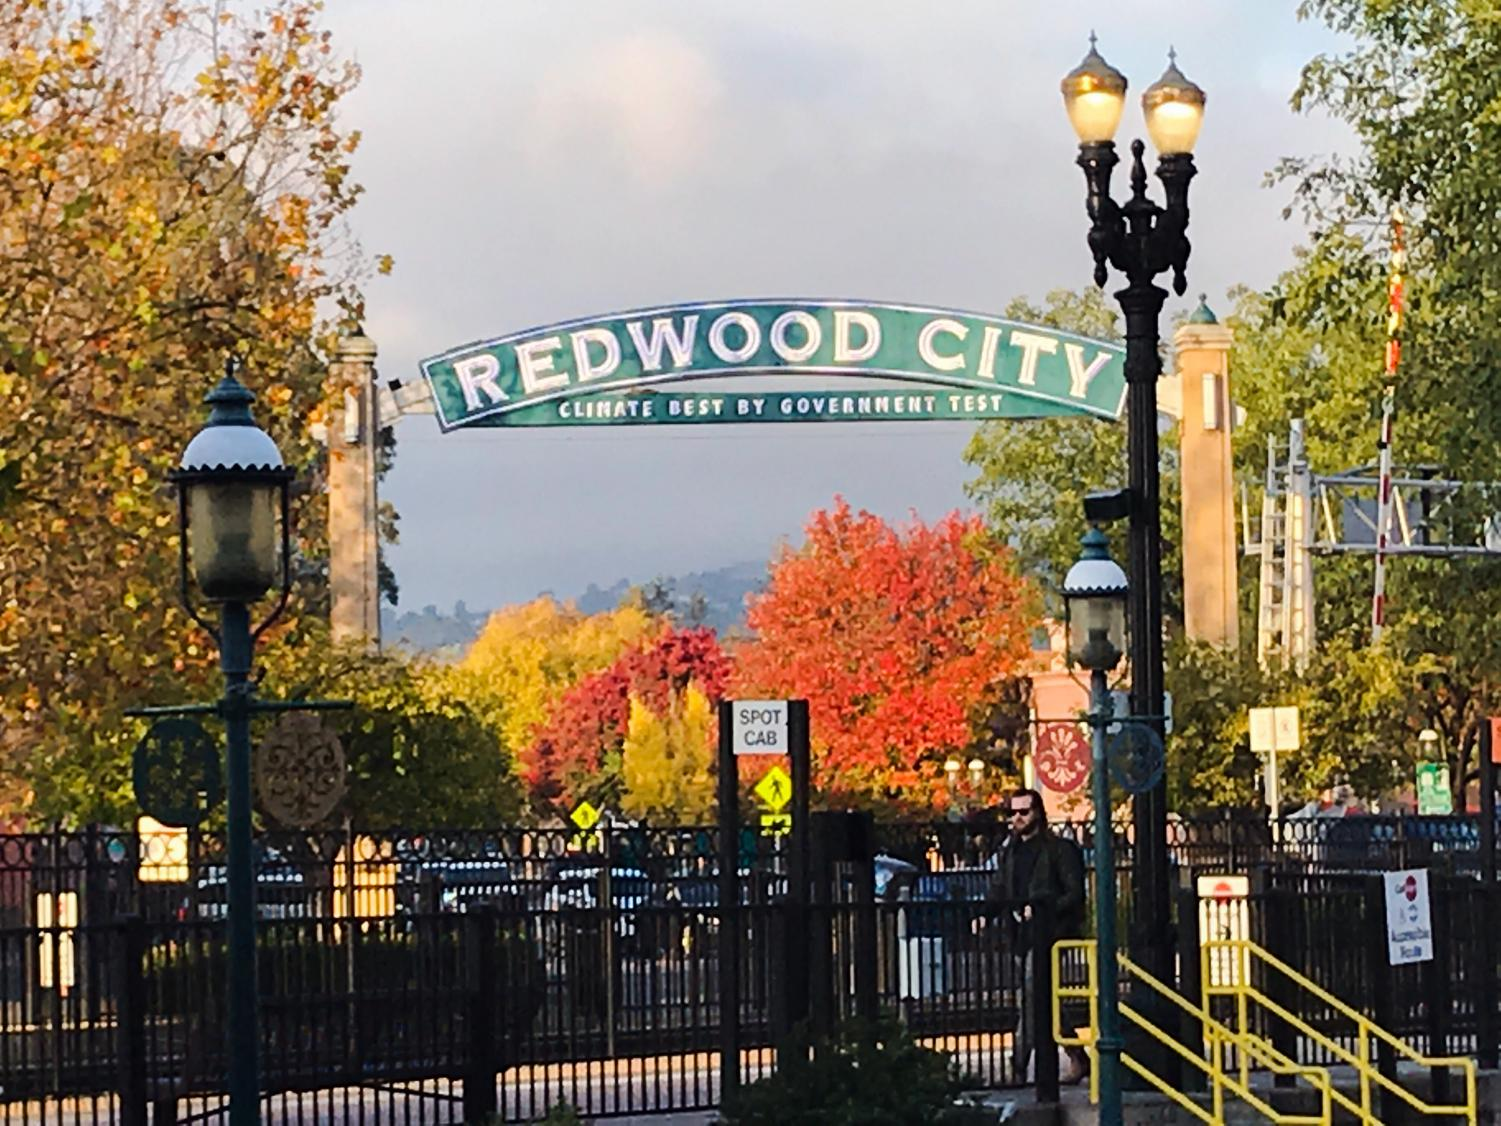 This sign is in the heart of Redwood City and welcomes people into the community.